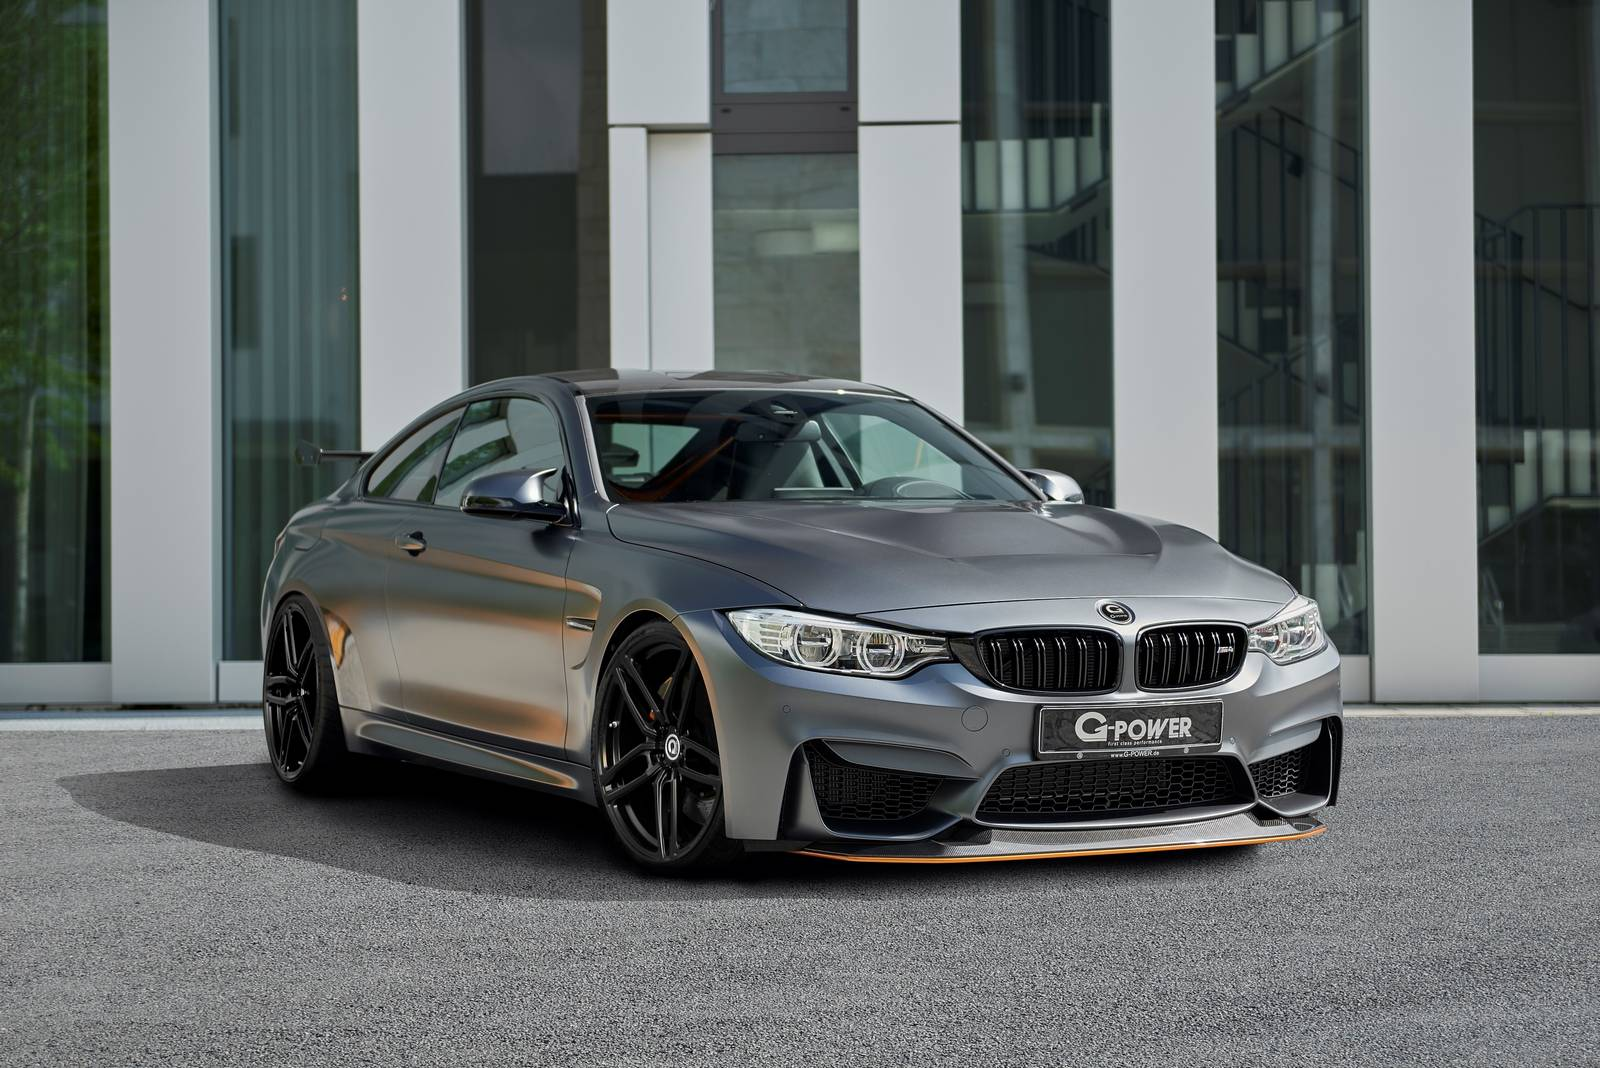 Official: 615hp G-Power BMW M4 GTS - GTspirit